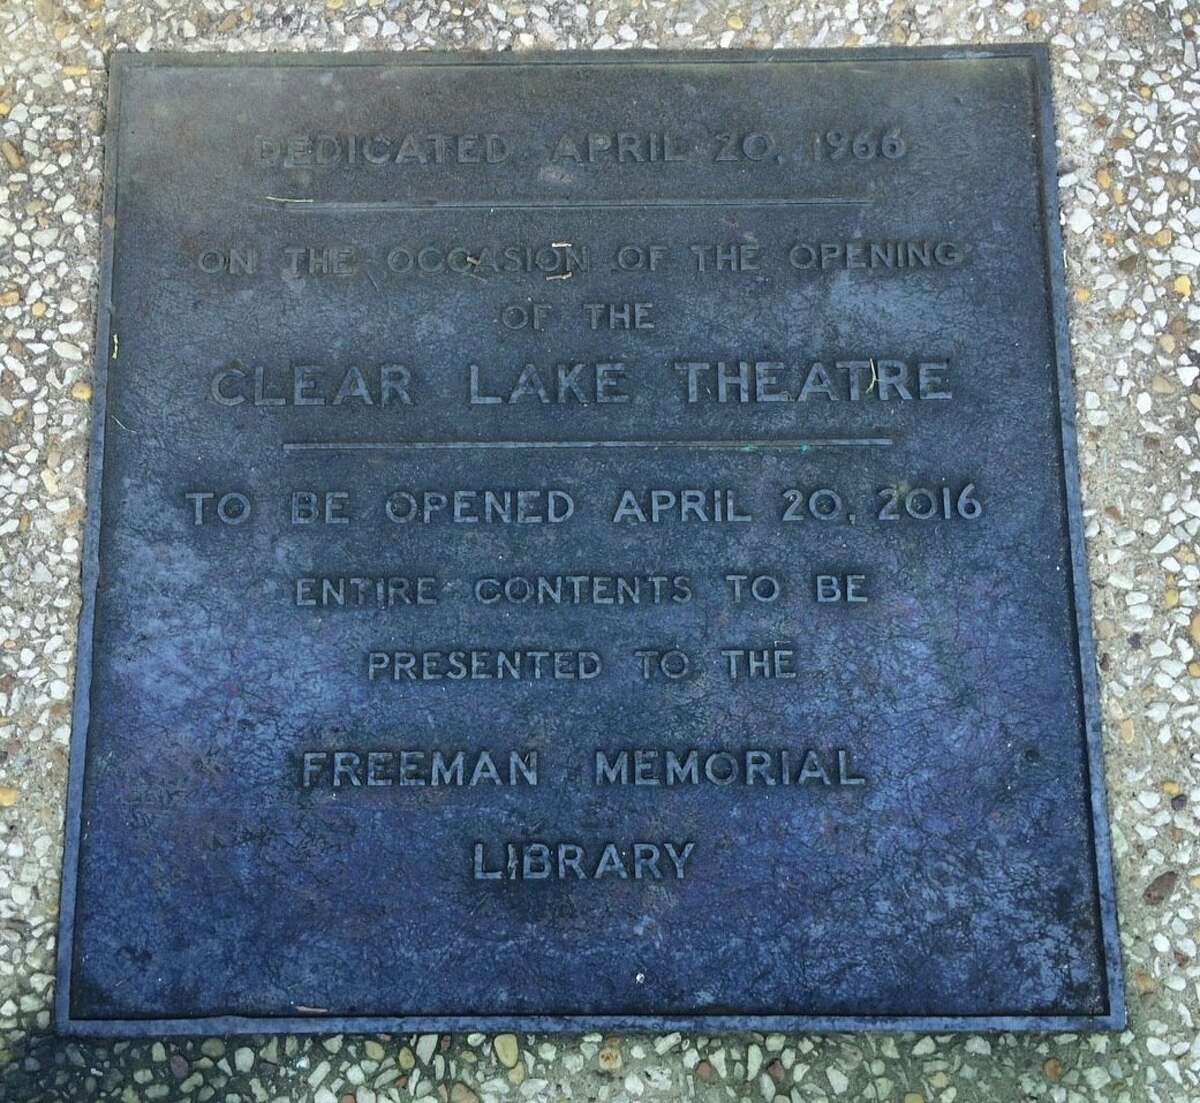 A 50-year-old time capsule buried at a former theater in Clear Lake was unearthed on Wednesday, April 20, 2016. Jim Johnson, branch manager of the Clear Lake City-County Freeman Branch Library, led the charge to exhume the capsule five decades after it was placed with much fanfare on the site, which has changed hands over the years and gone through a handful of changes.